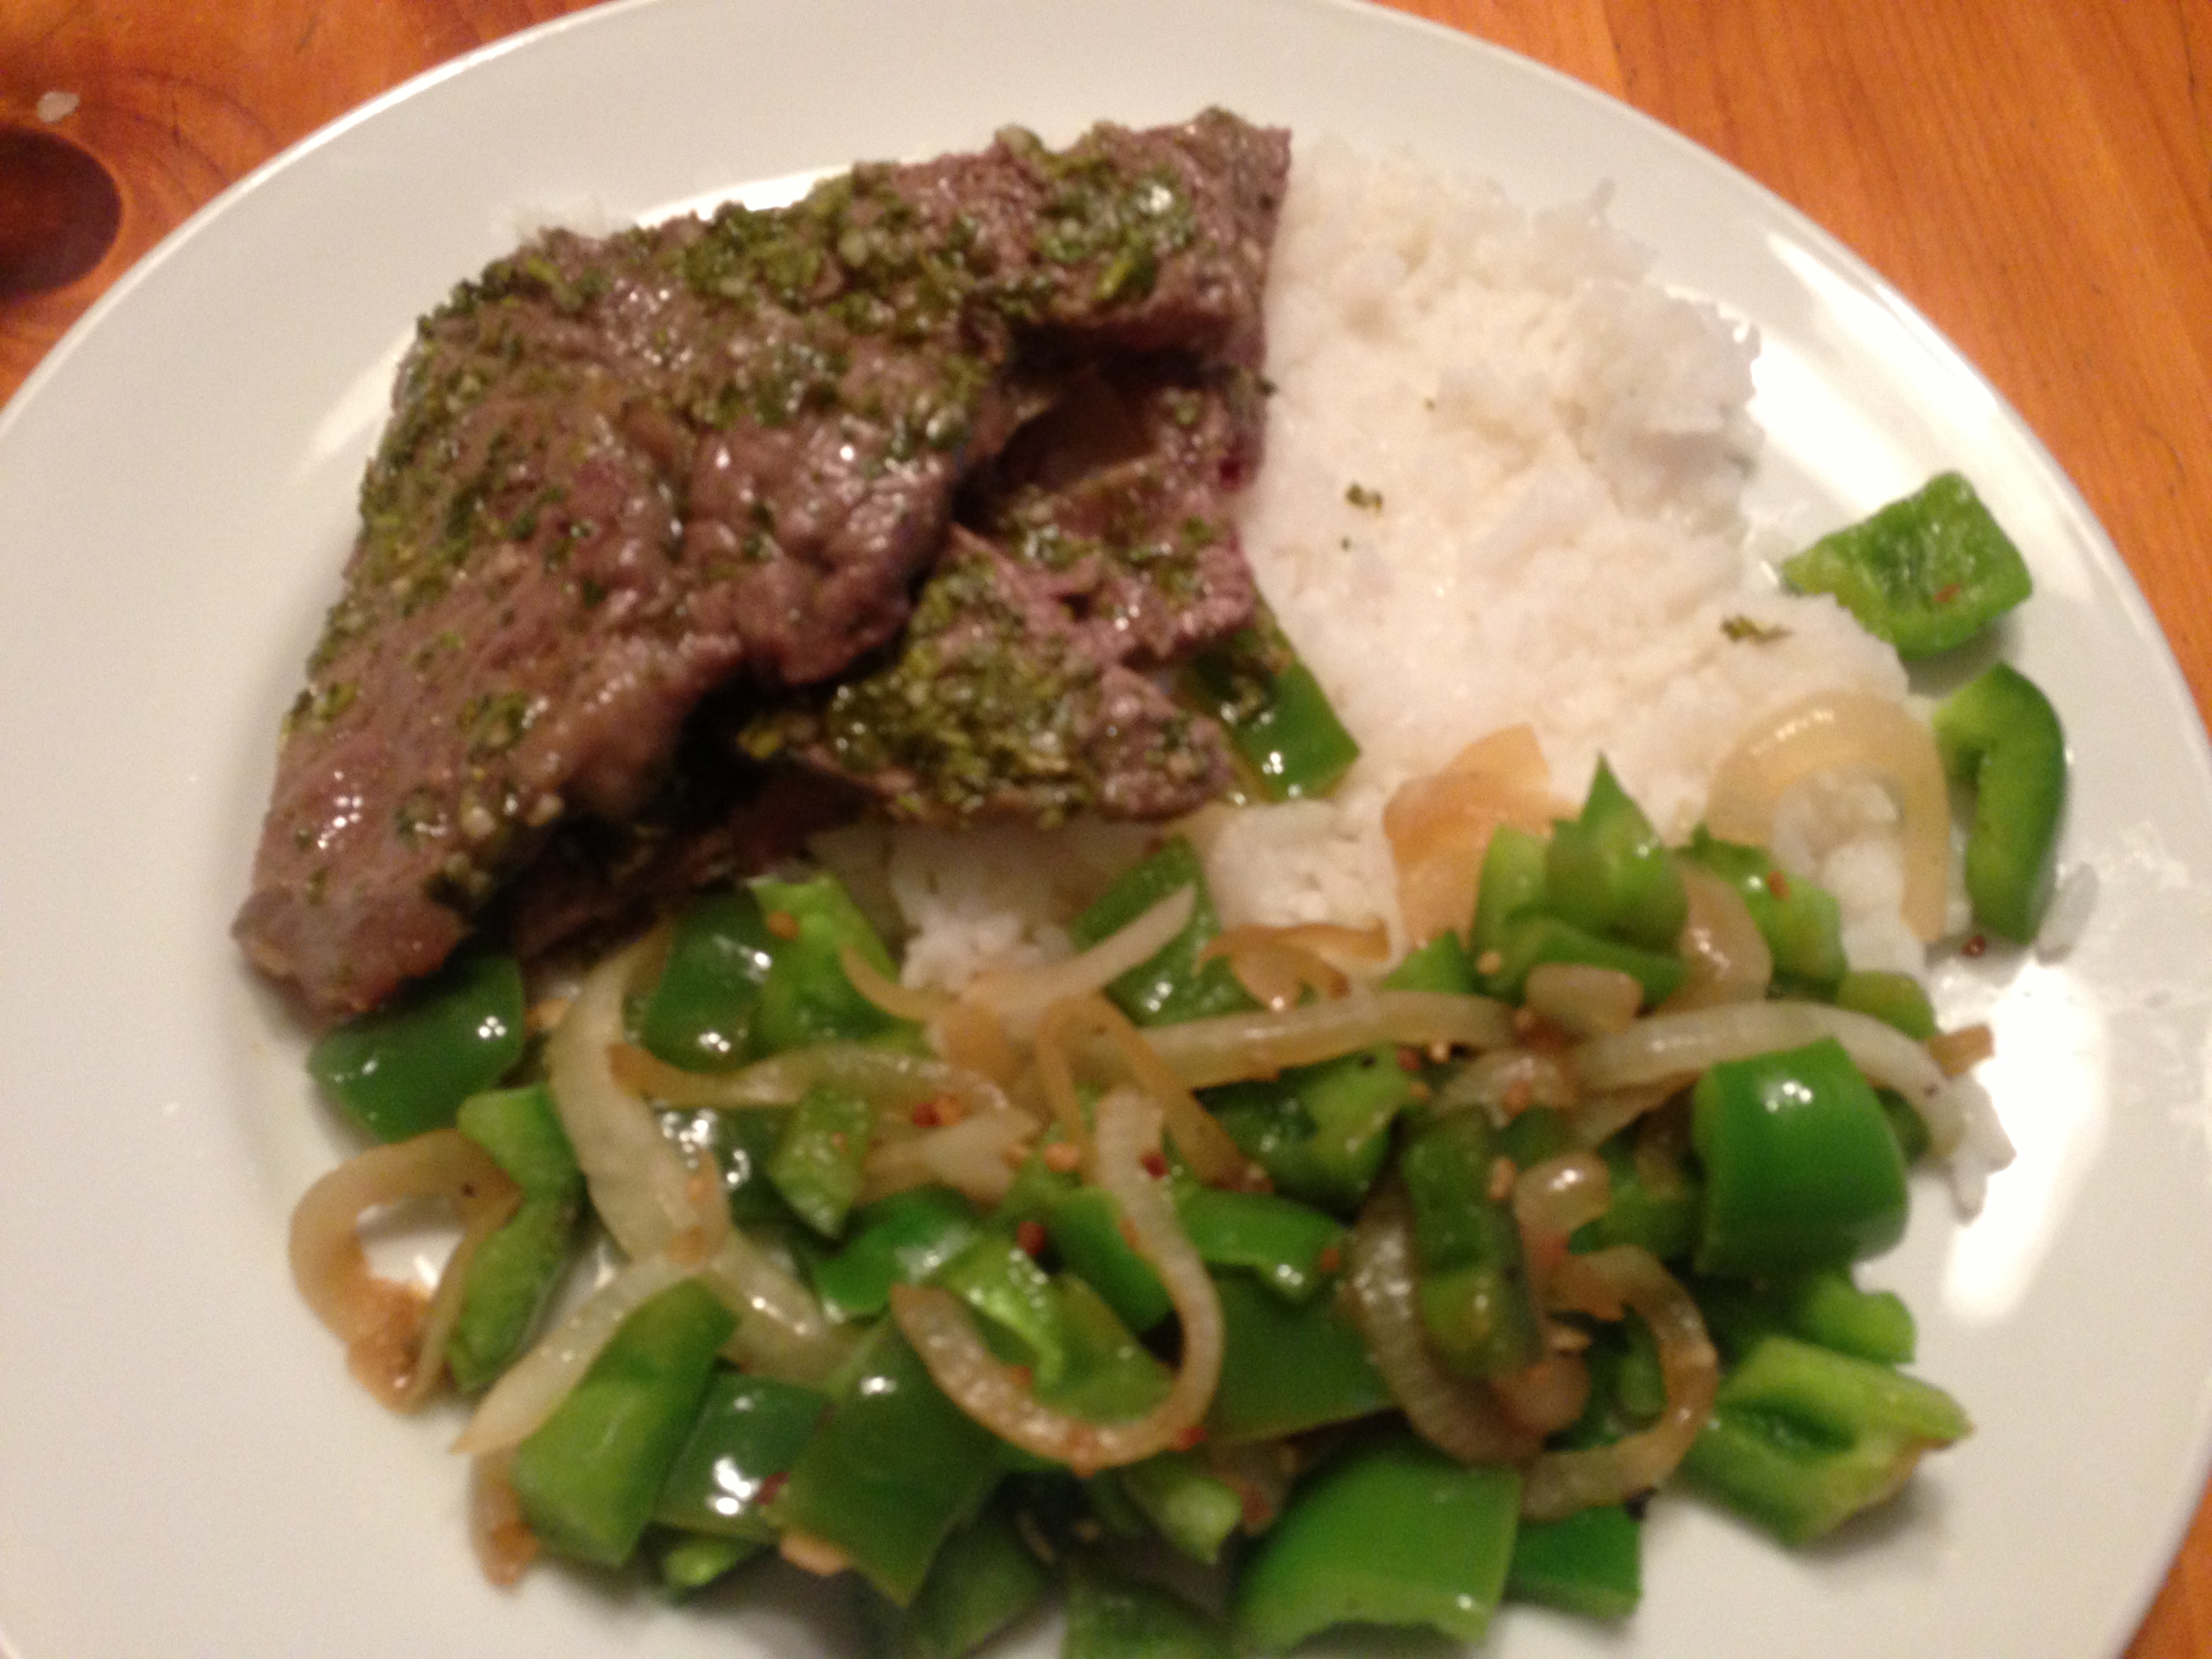 Steak with chimichurri sauce | Dispatches from the Castle